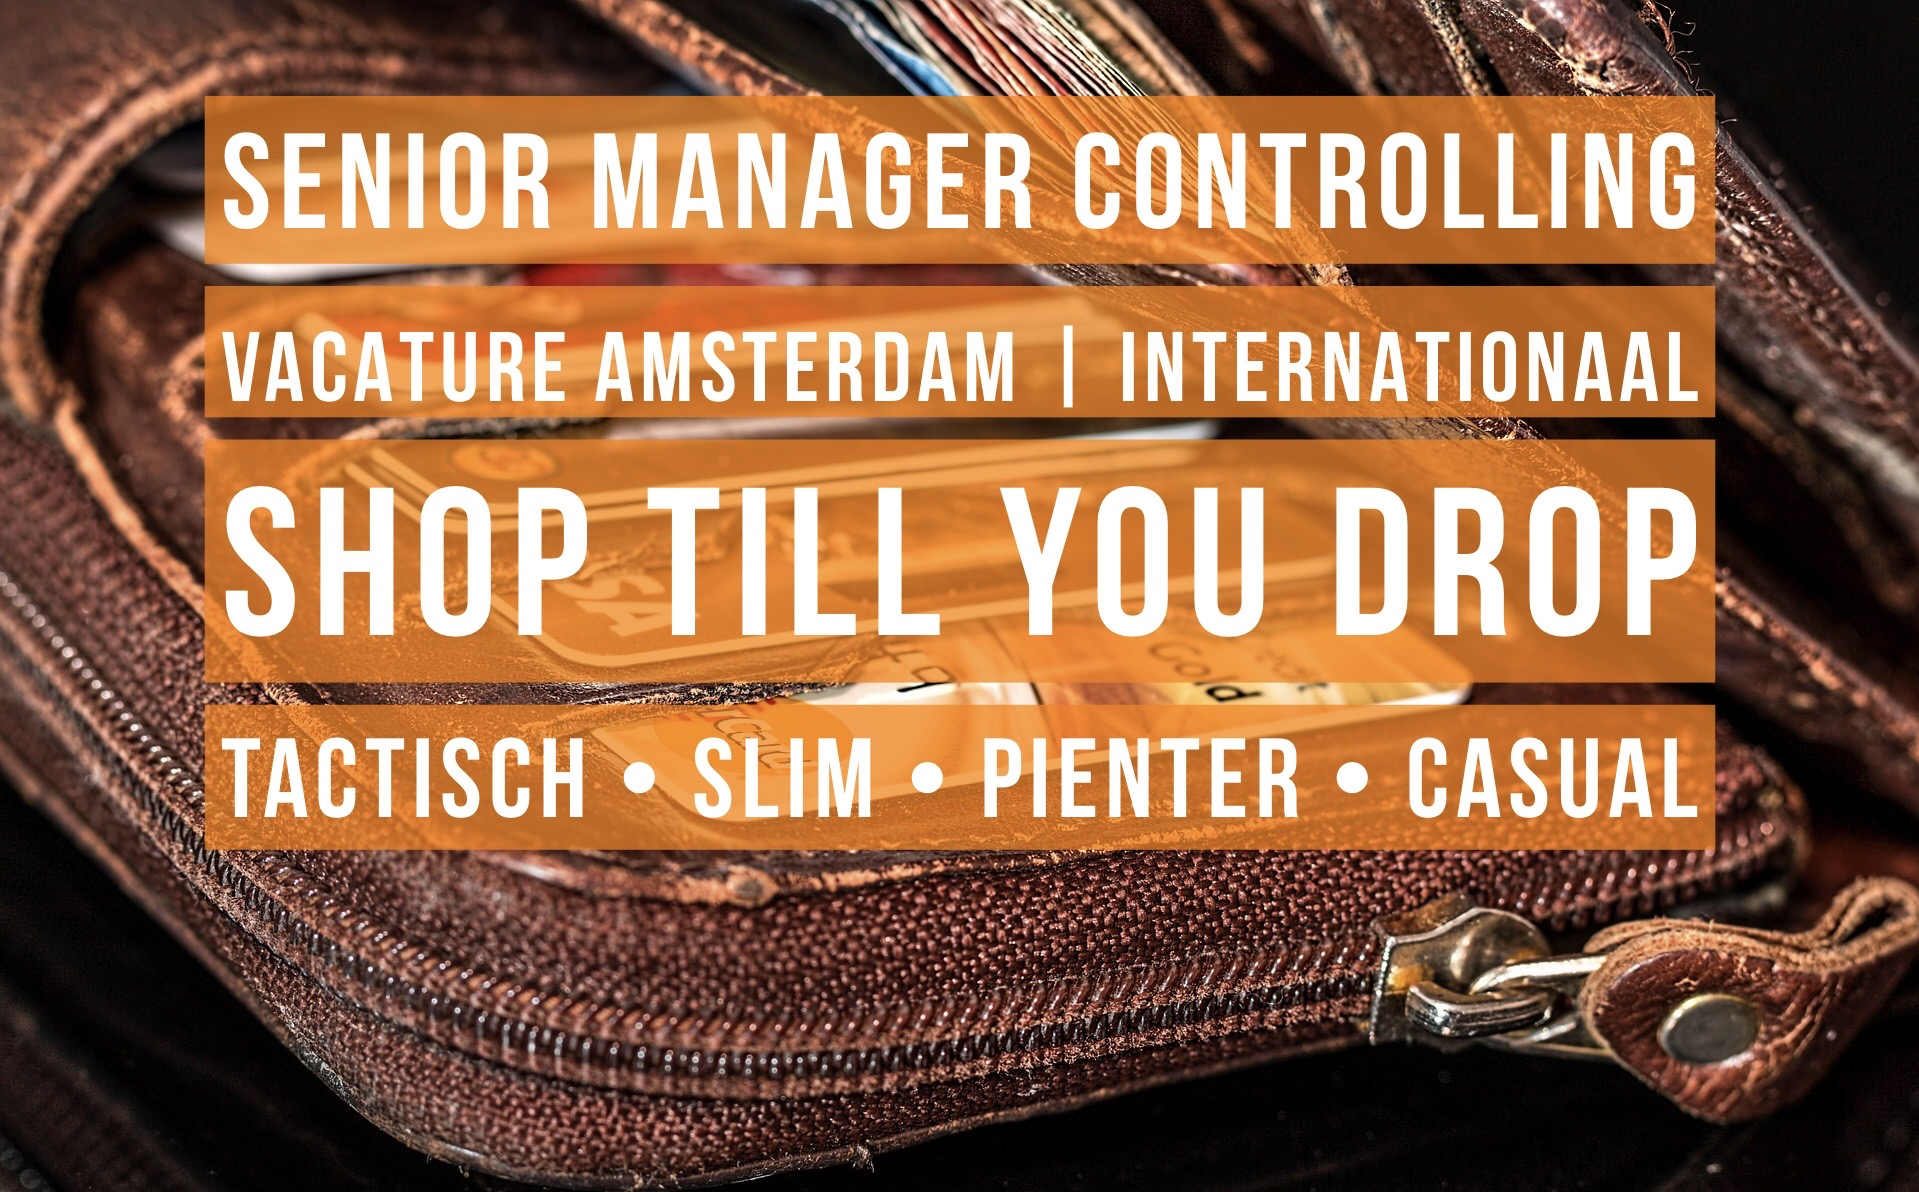 Senior Manager Controlling vacature Amsterdam internationaal retail